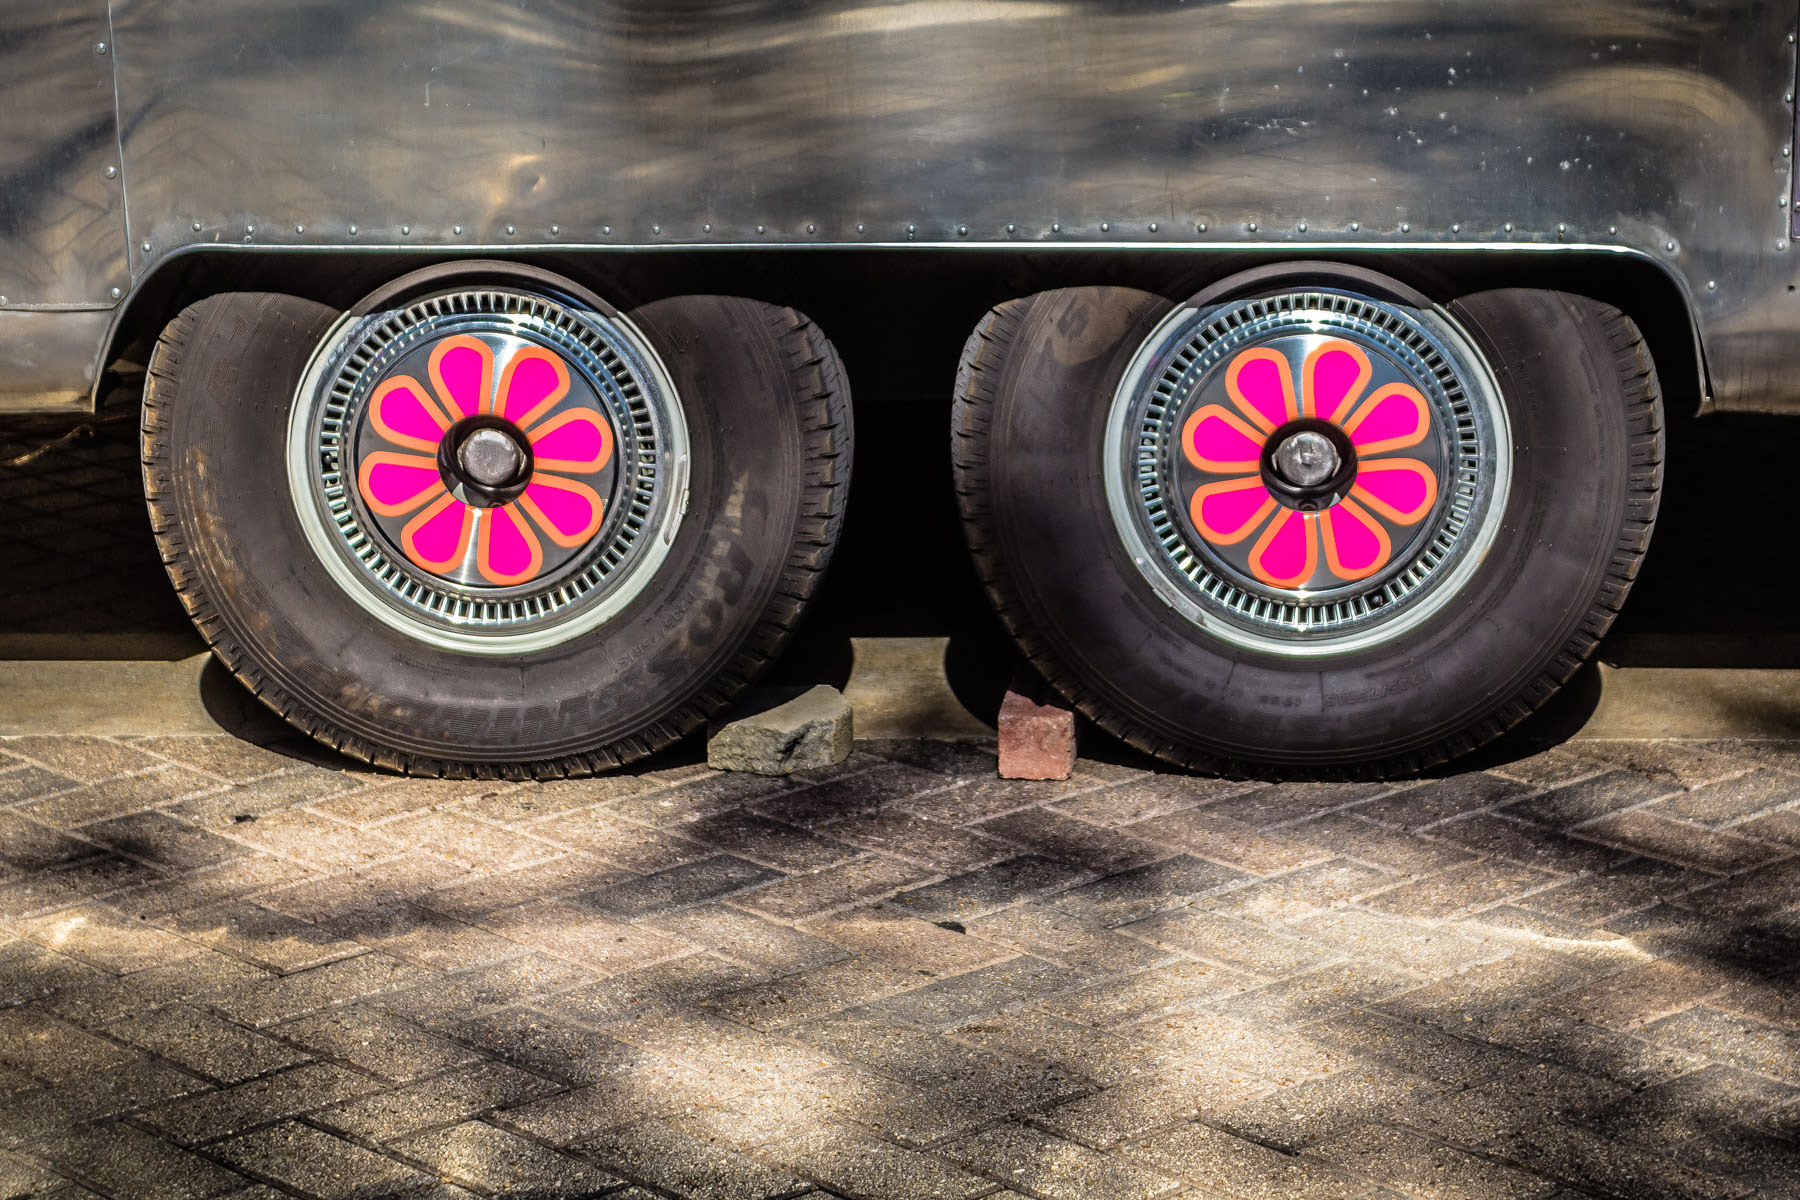 Decorated wheels on an Airstream caravan used as a food truck by Trailercakes spotted in the Dallas Arts District.